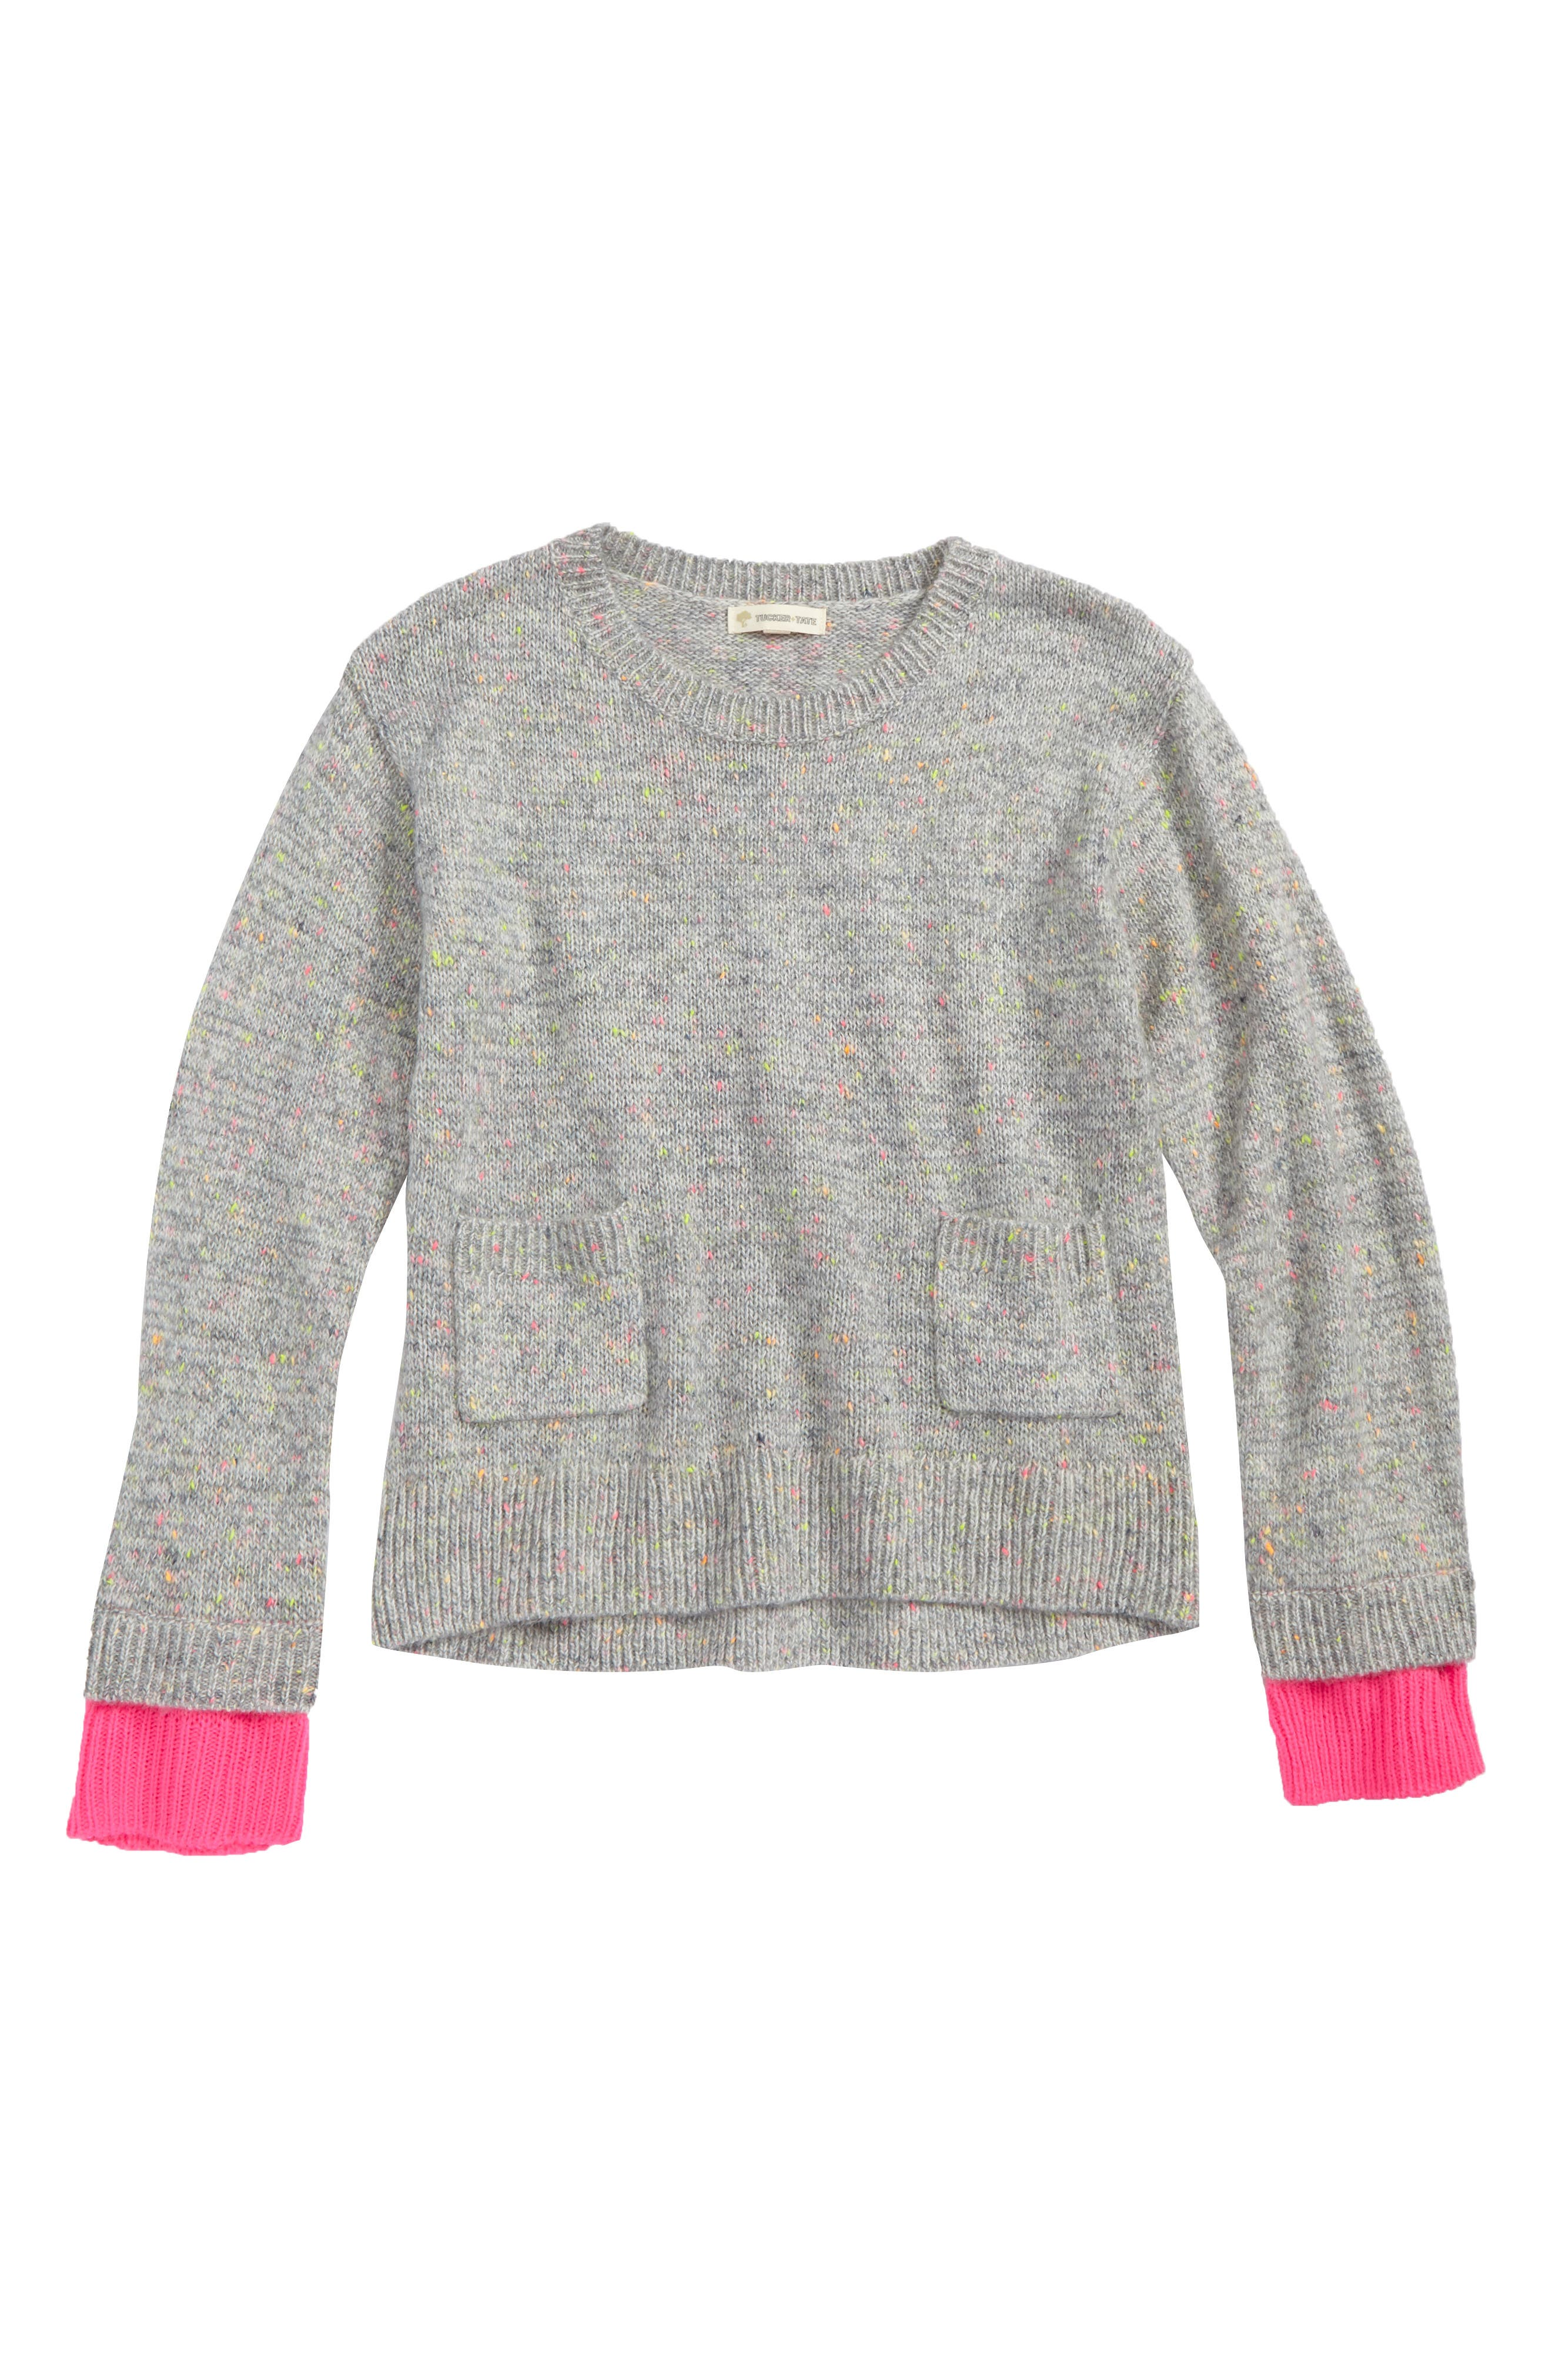 Neon Knit Sweater,                             Main thumbnail 1, color,